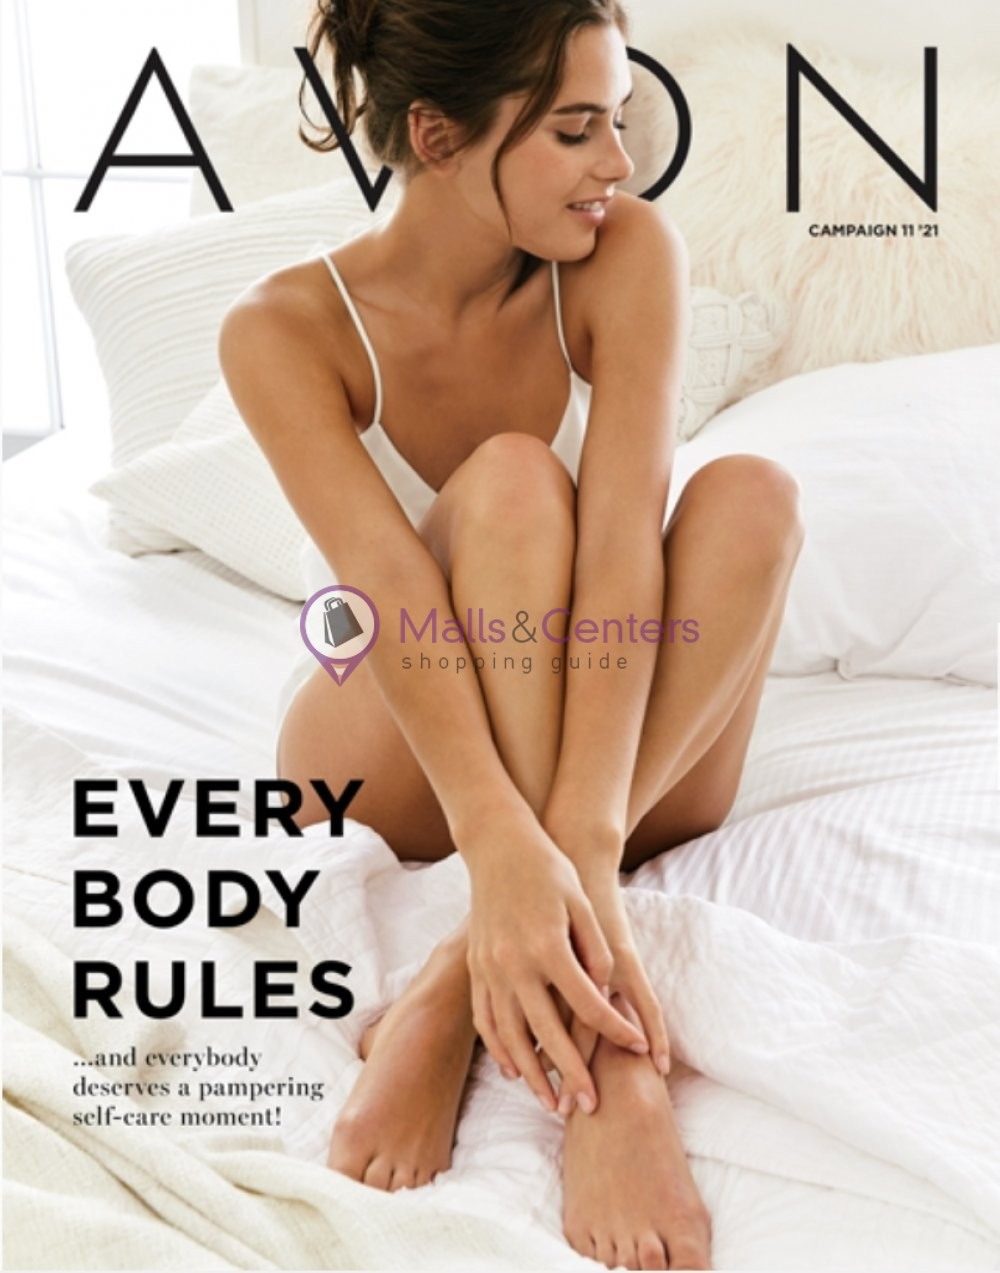 weekly ads Avon - page 1 - mallscenters.com